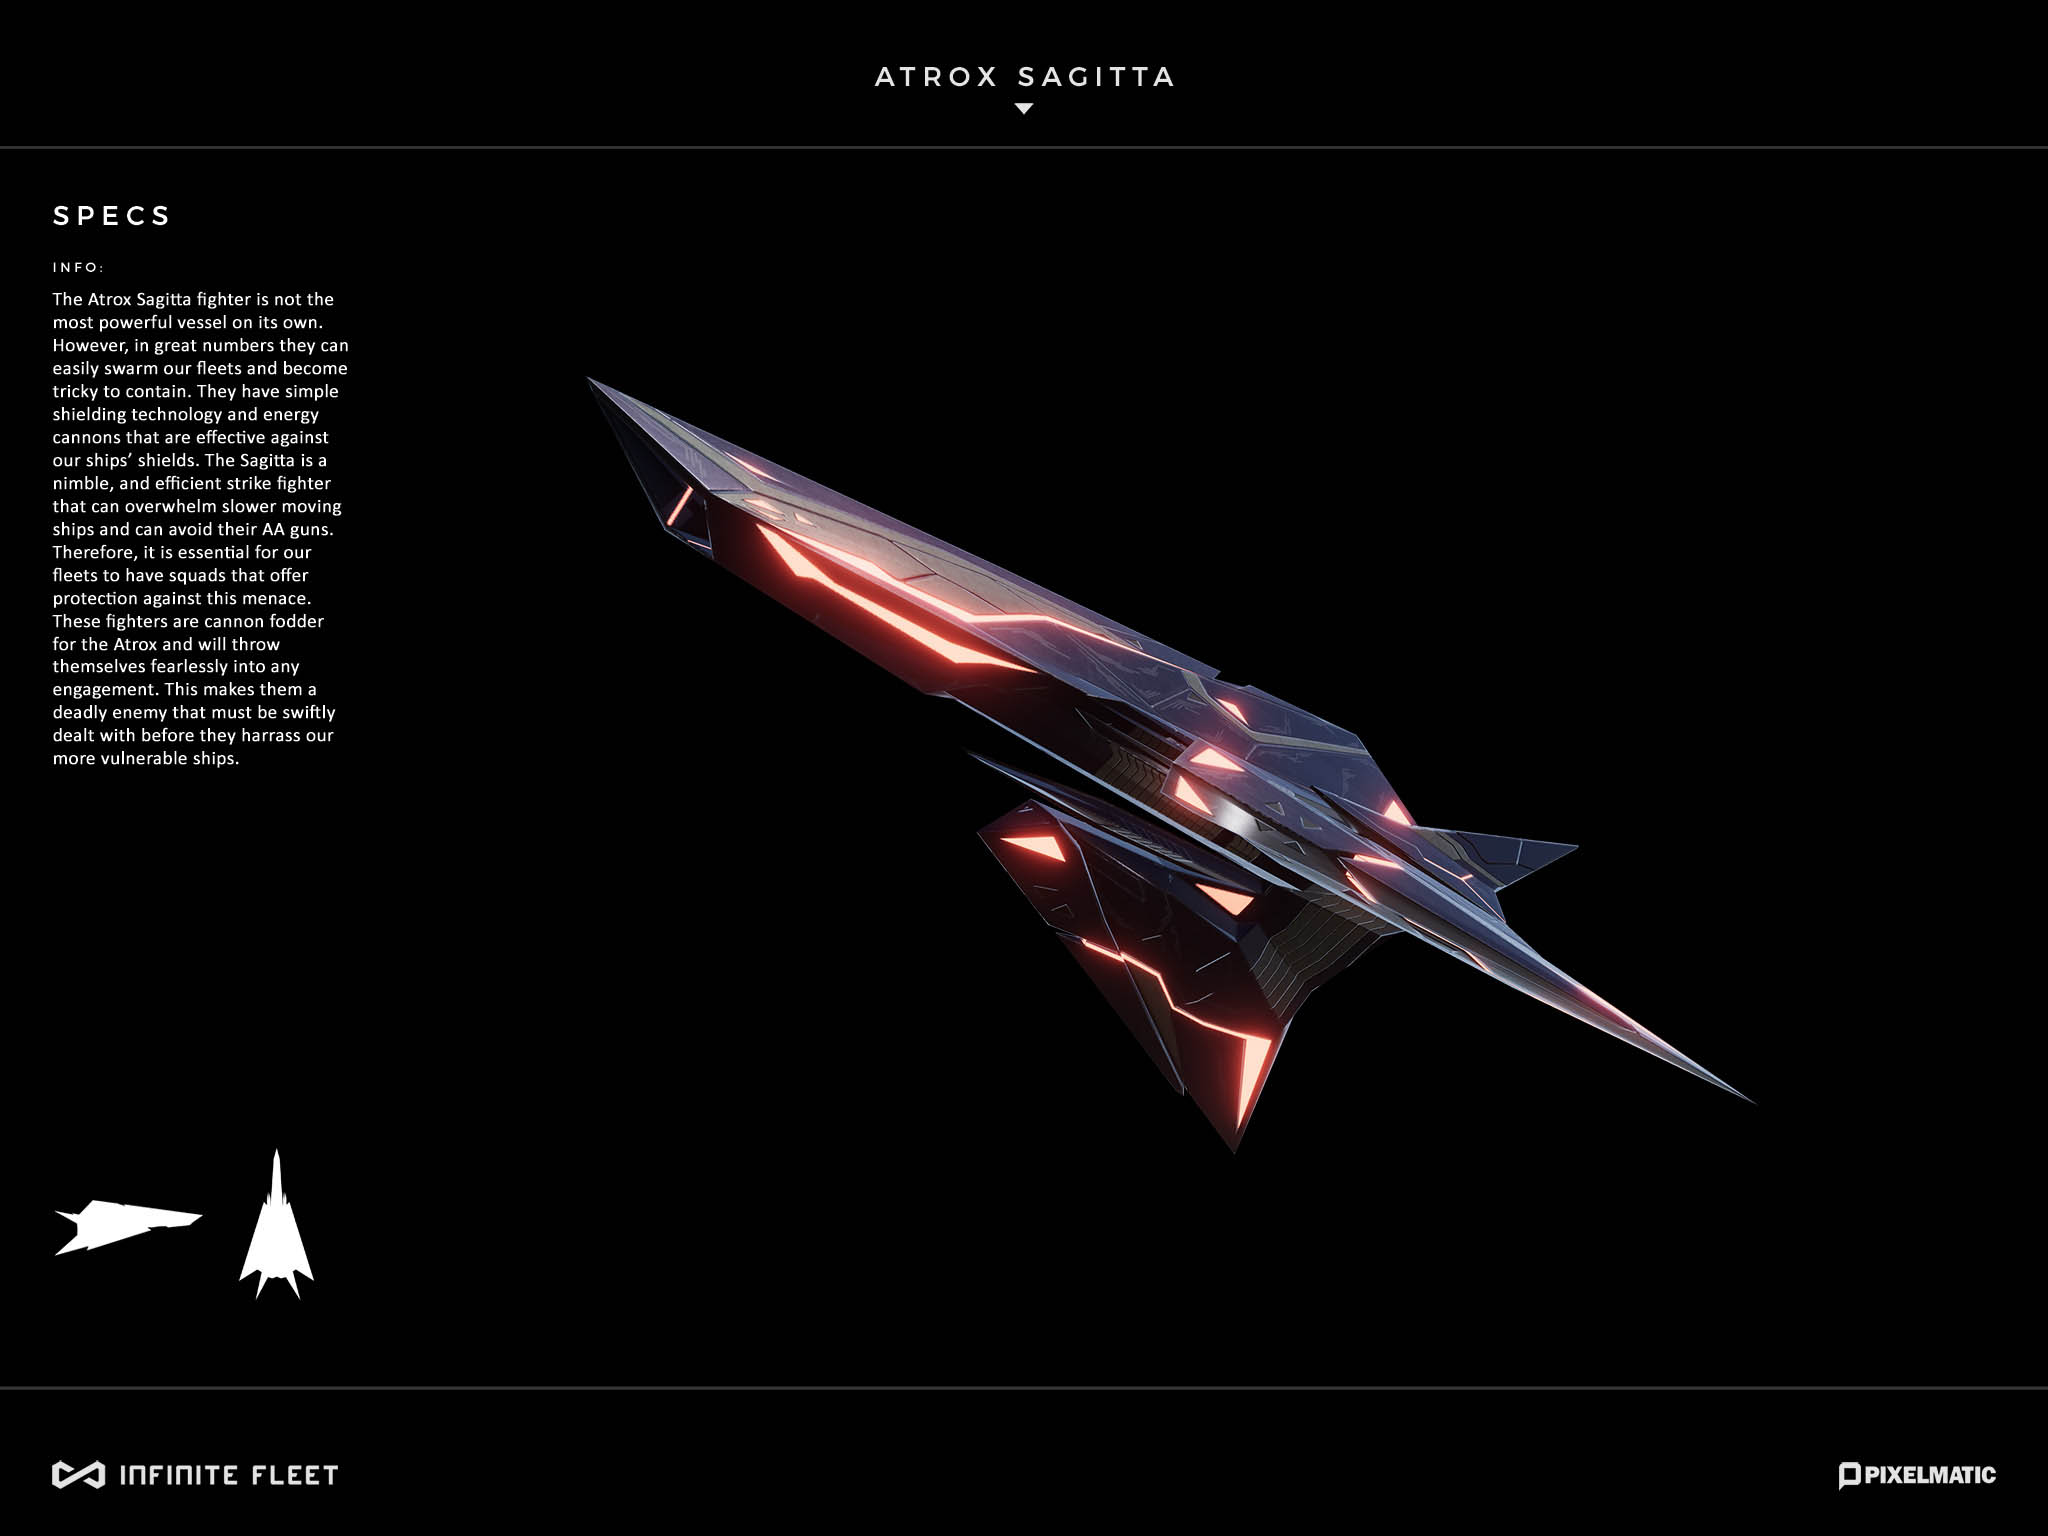 atrox sagitta alien space fighter model